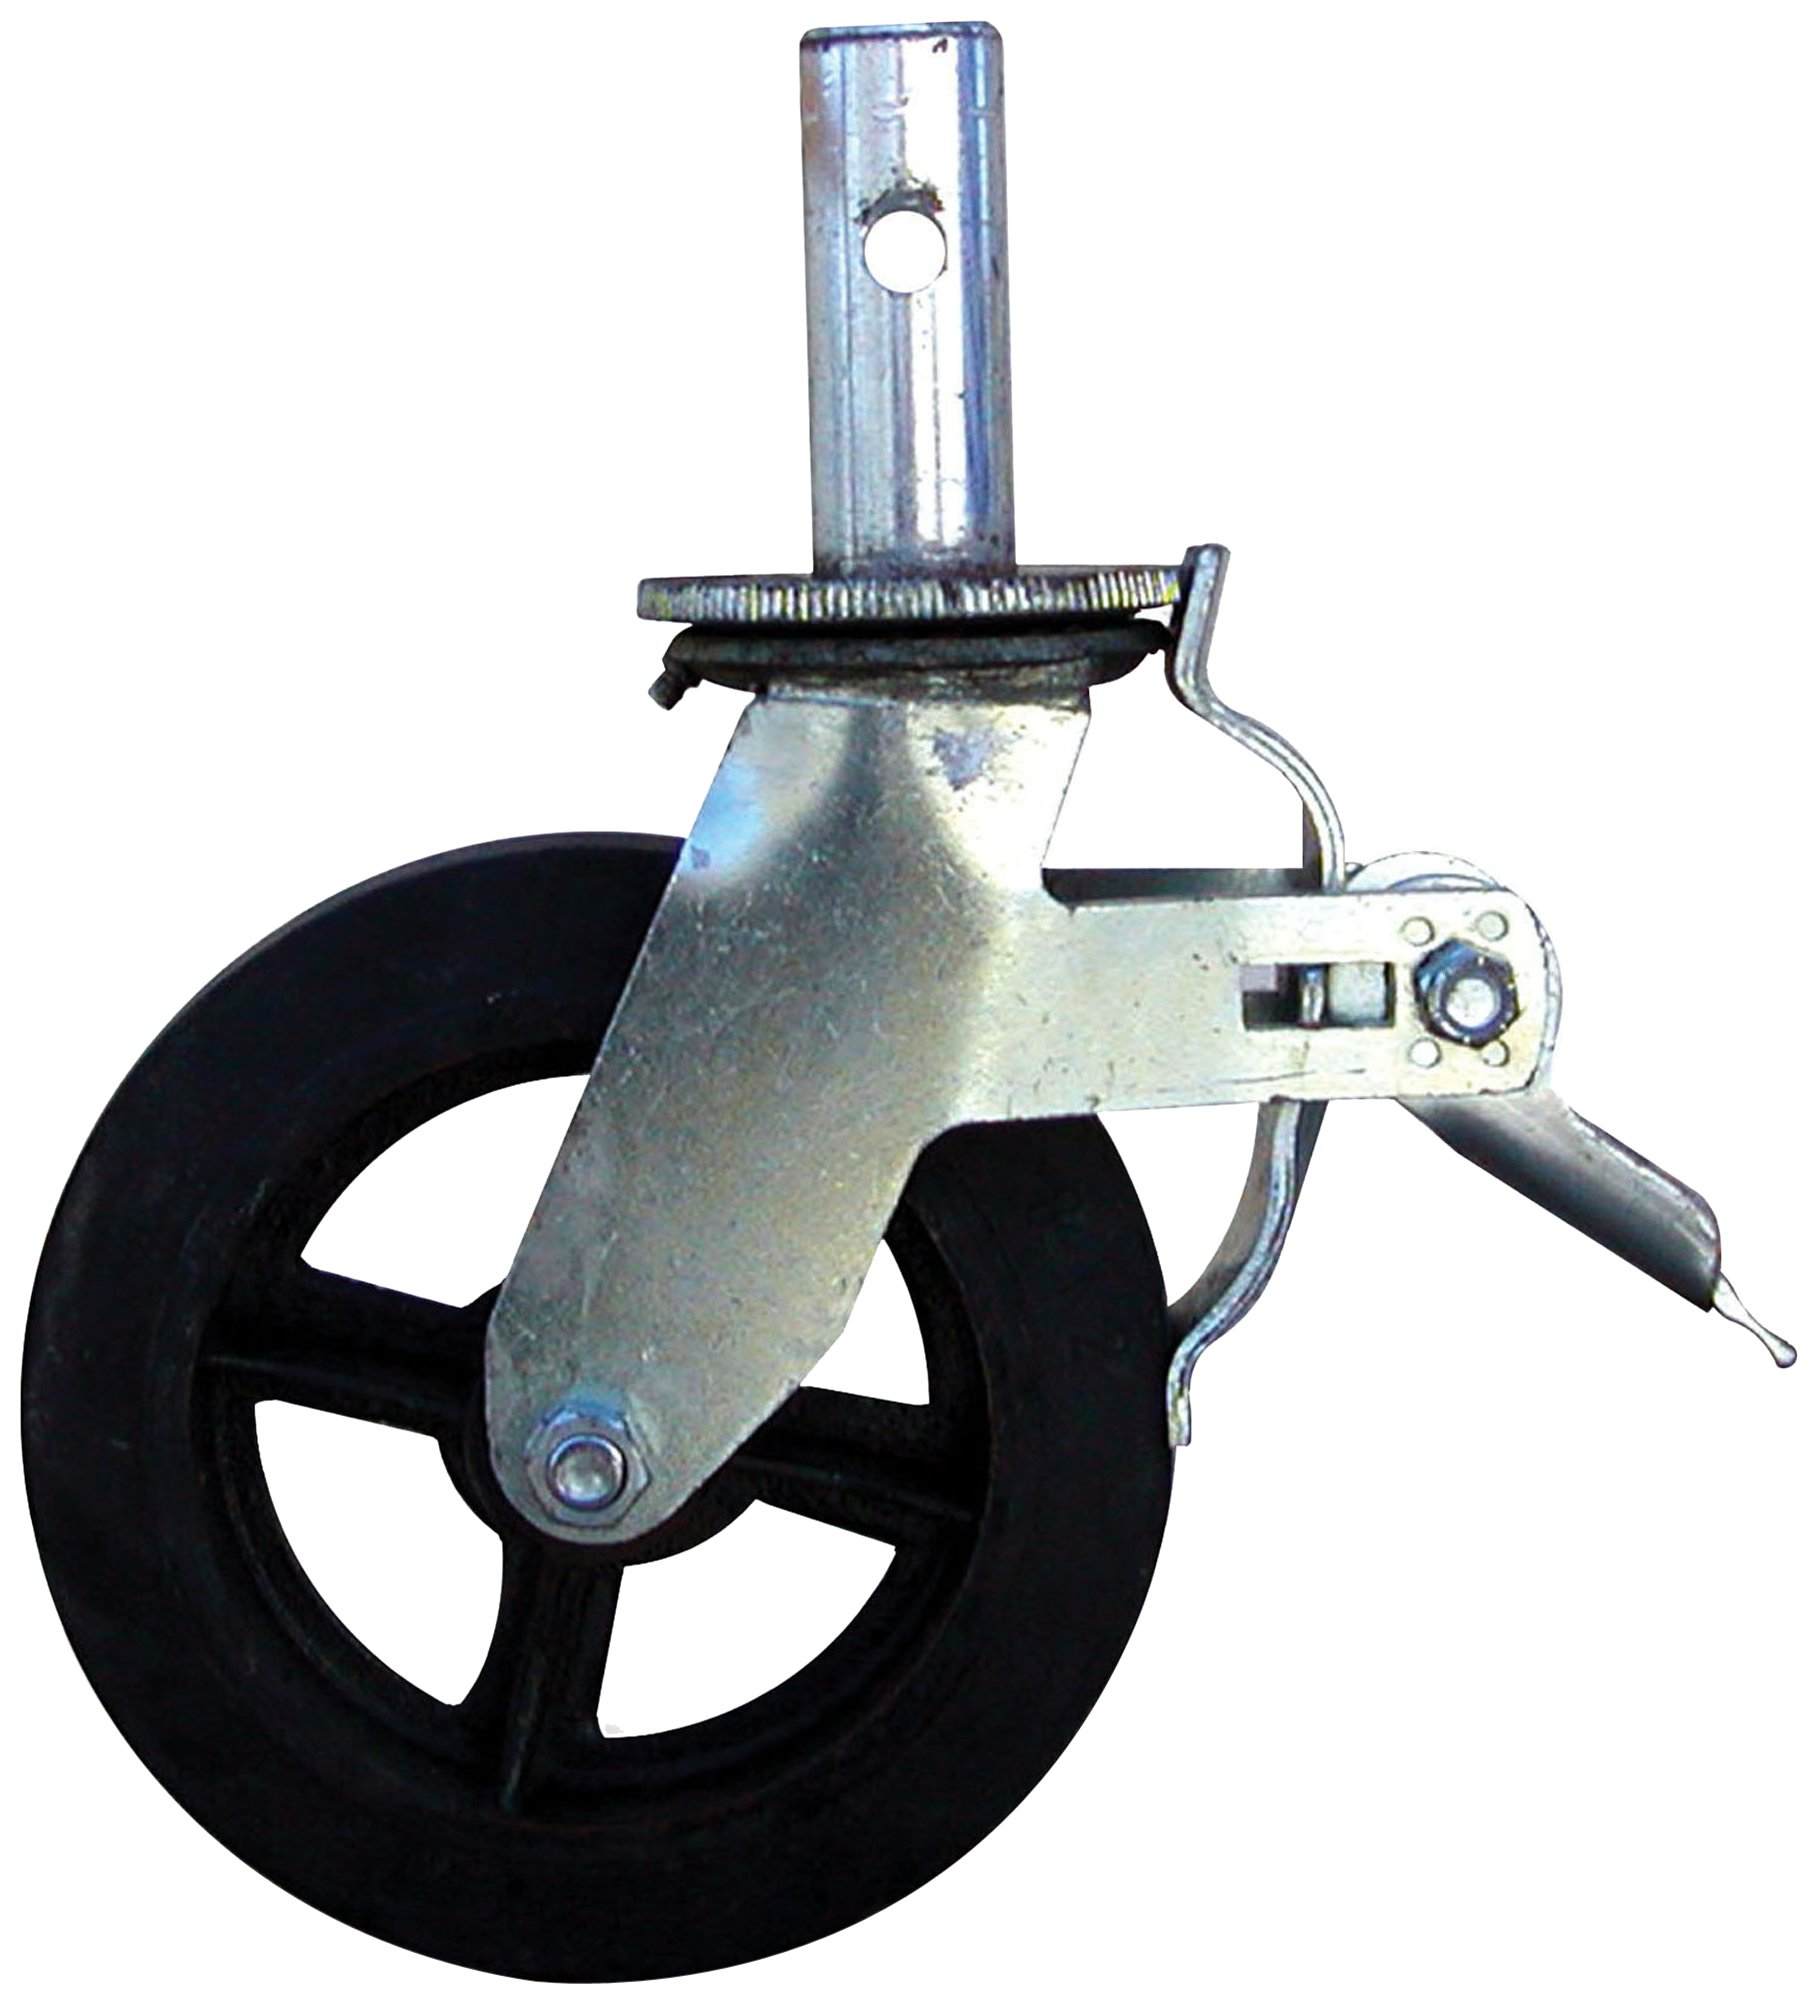 Buffalo Tools GSC8 8-Inch Caster with Foot Brake for GSF55 Scaffold Frame by Buffalo Tools